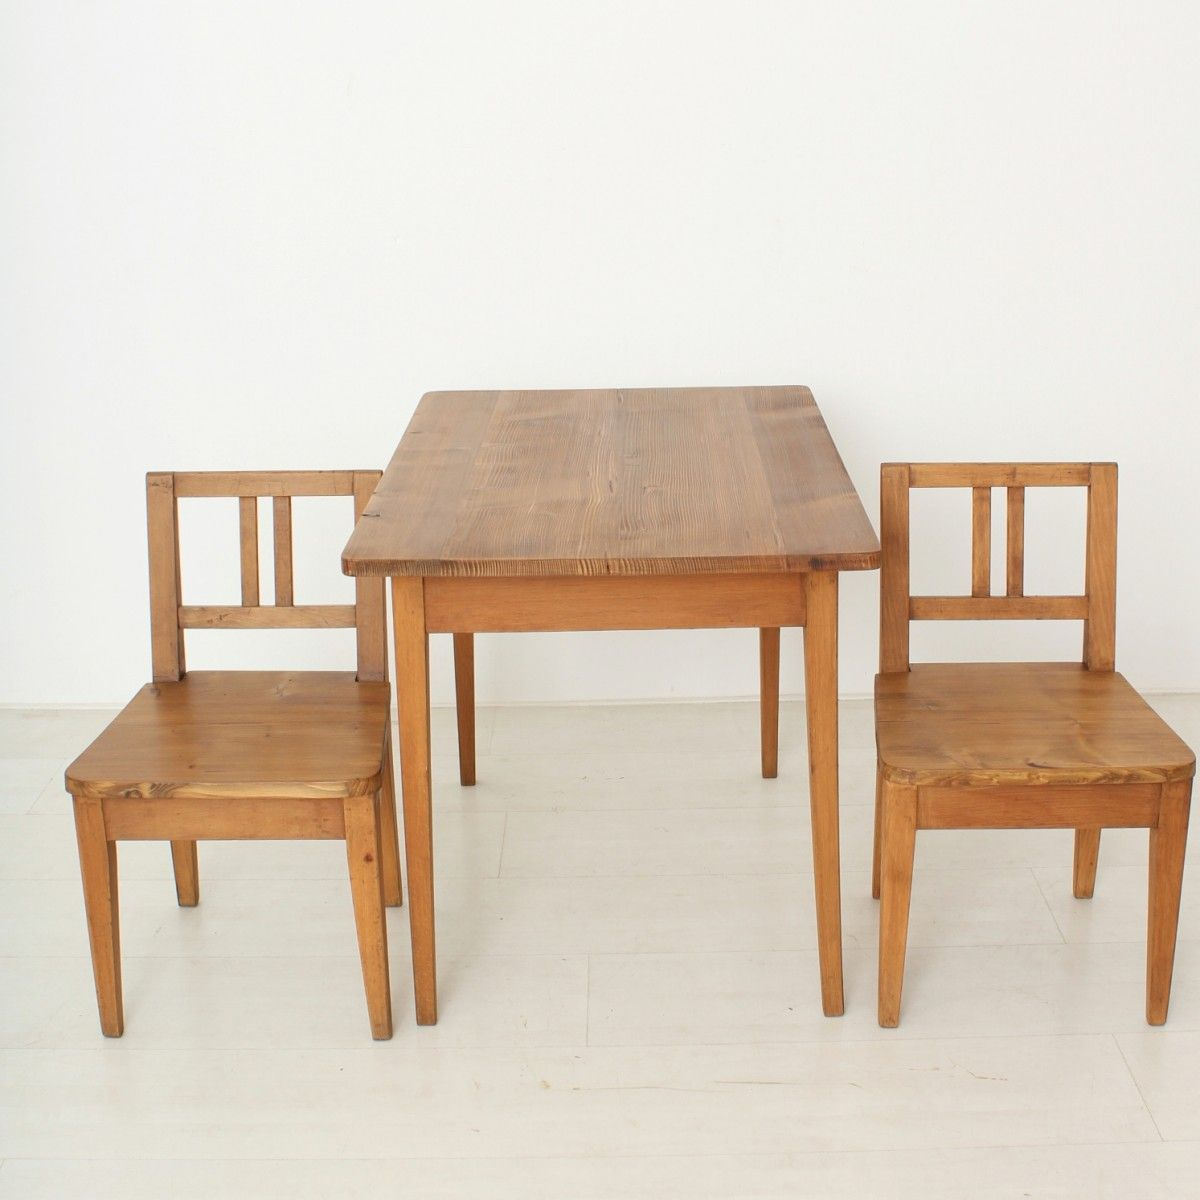 Vintage Childrens' Table & Chair Set, Set of 3 - Vintage Childrens' Table & Chair Set, Set Of 3 For Sale At Pamono